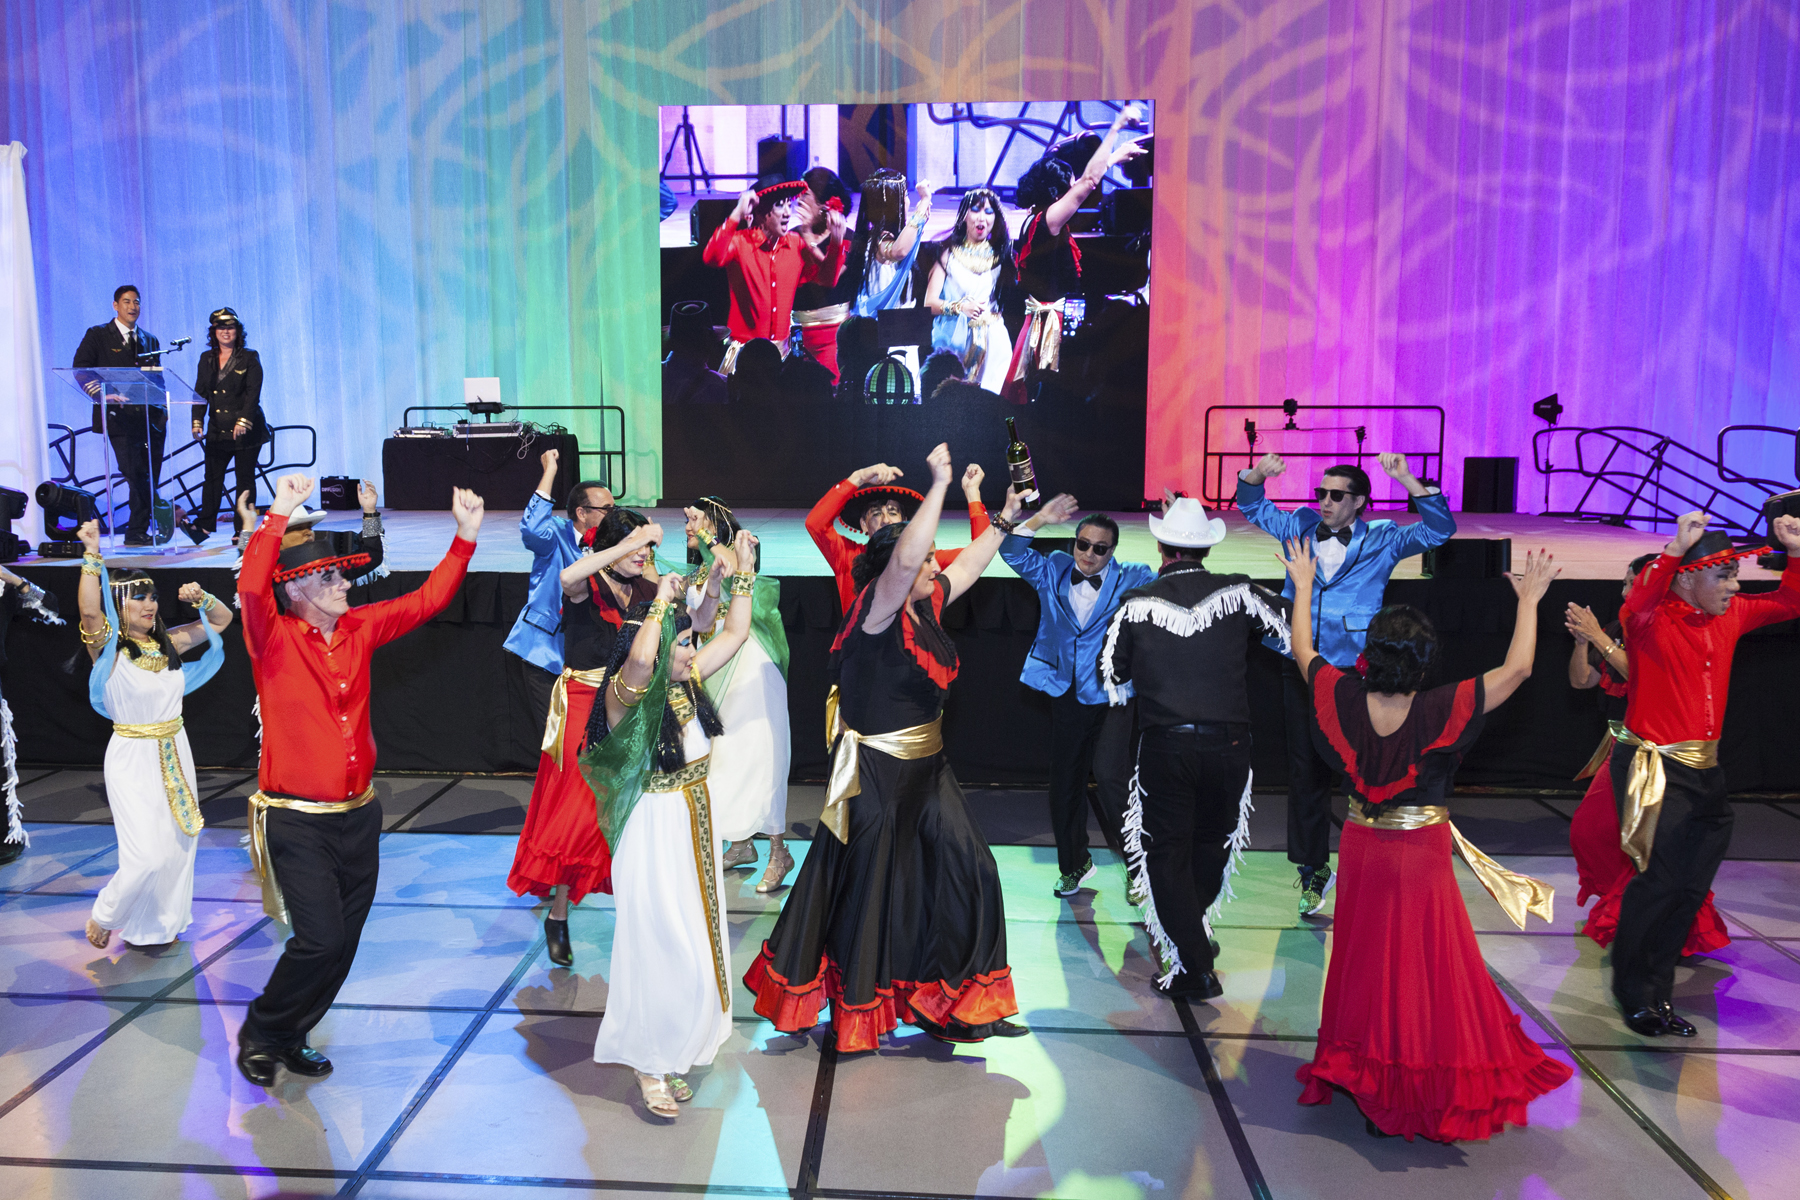 2016 AN EVENING AROUND THE WORLD: A flash mob breaks out on the dance floor while emcees Steve & Liz Uyehara were making an announcement.